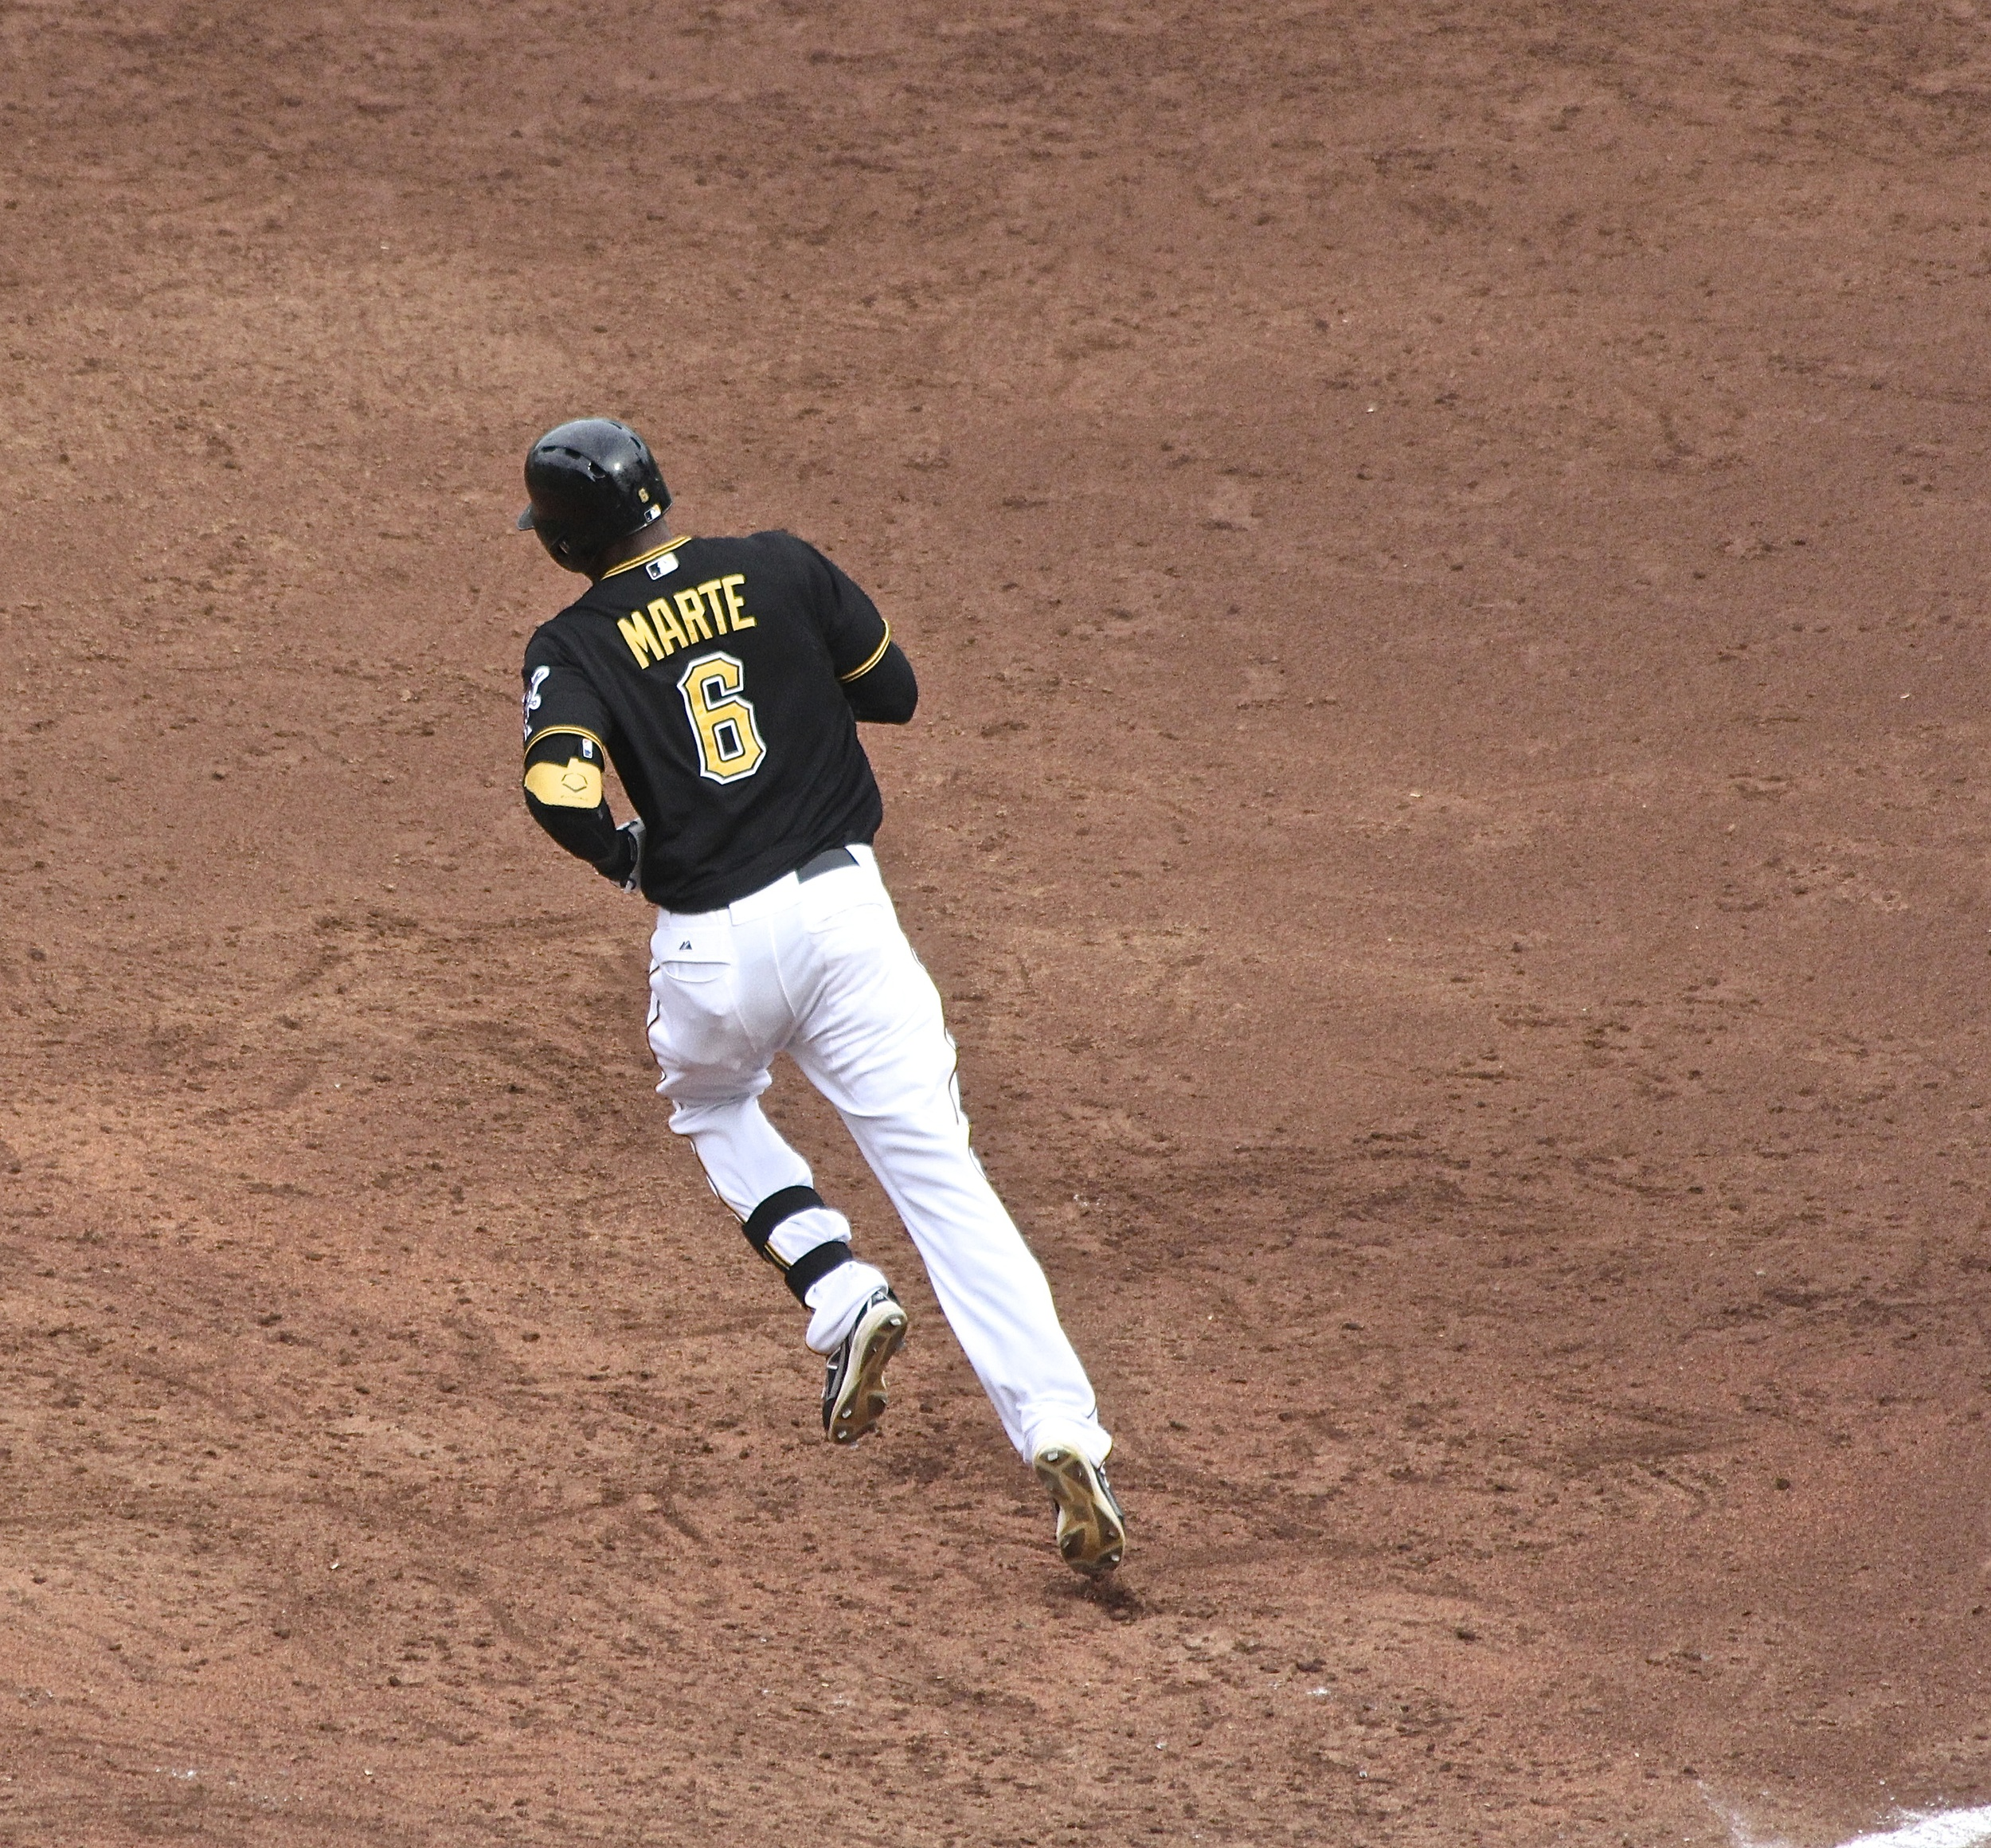 Starling Marte rounds first